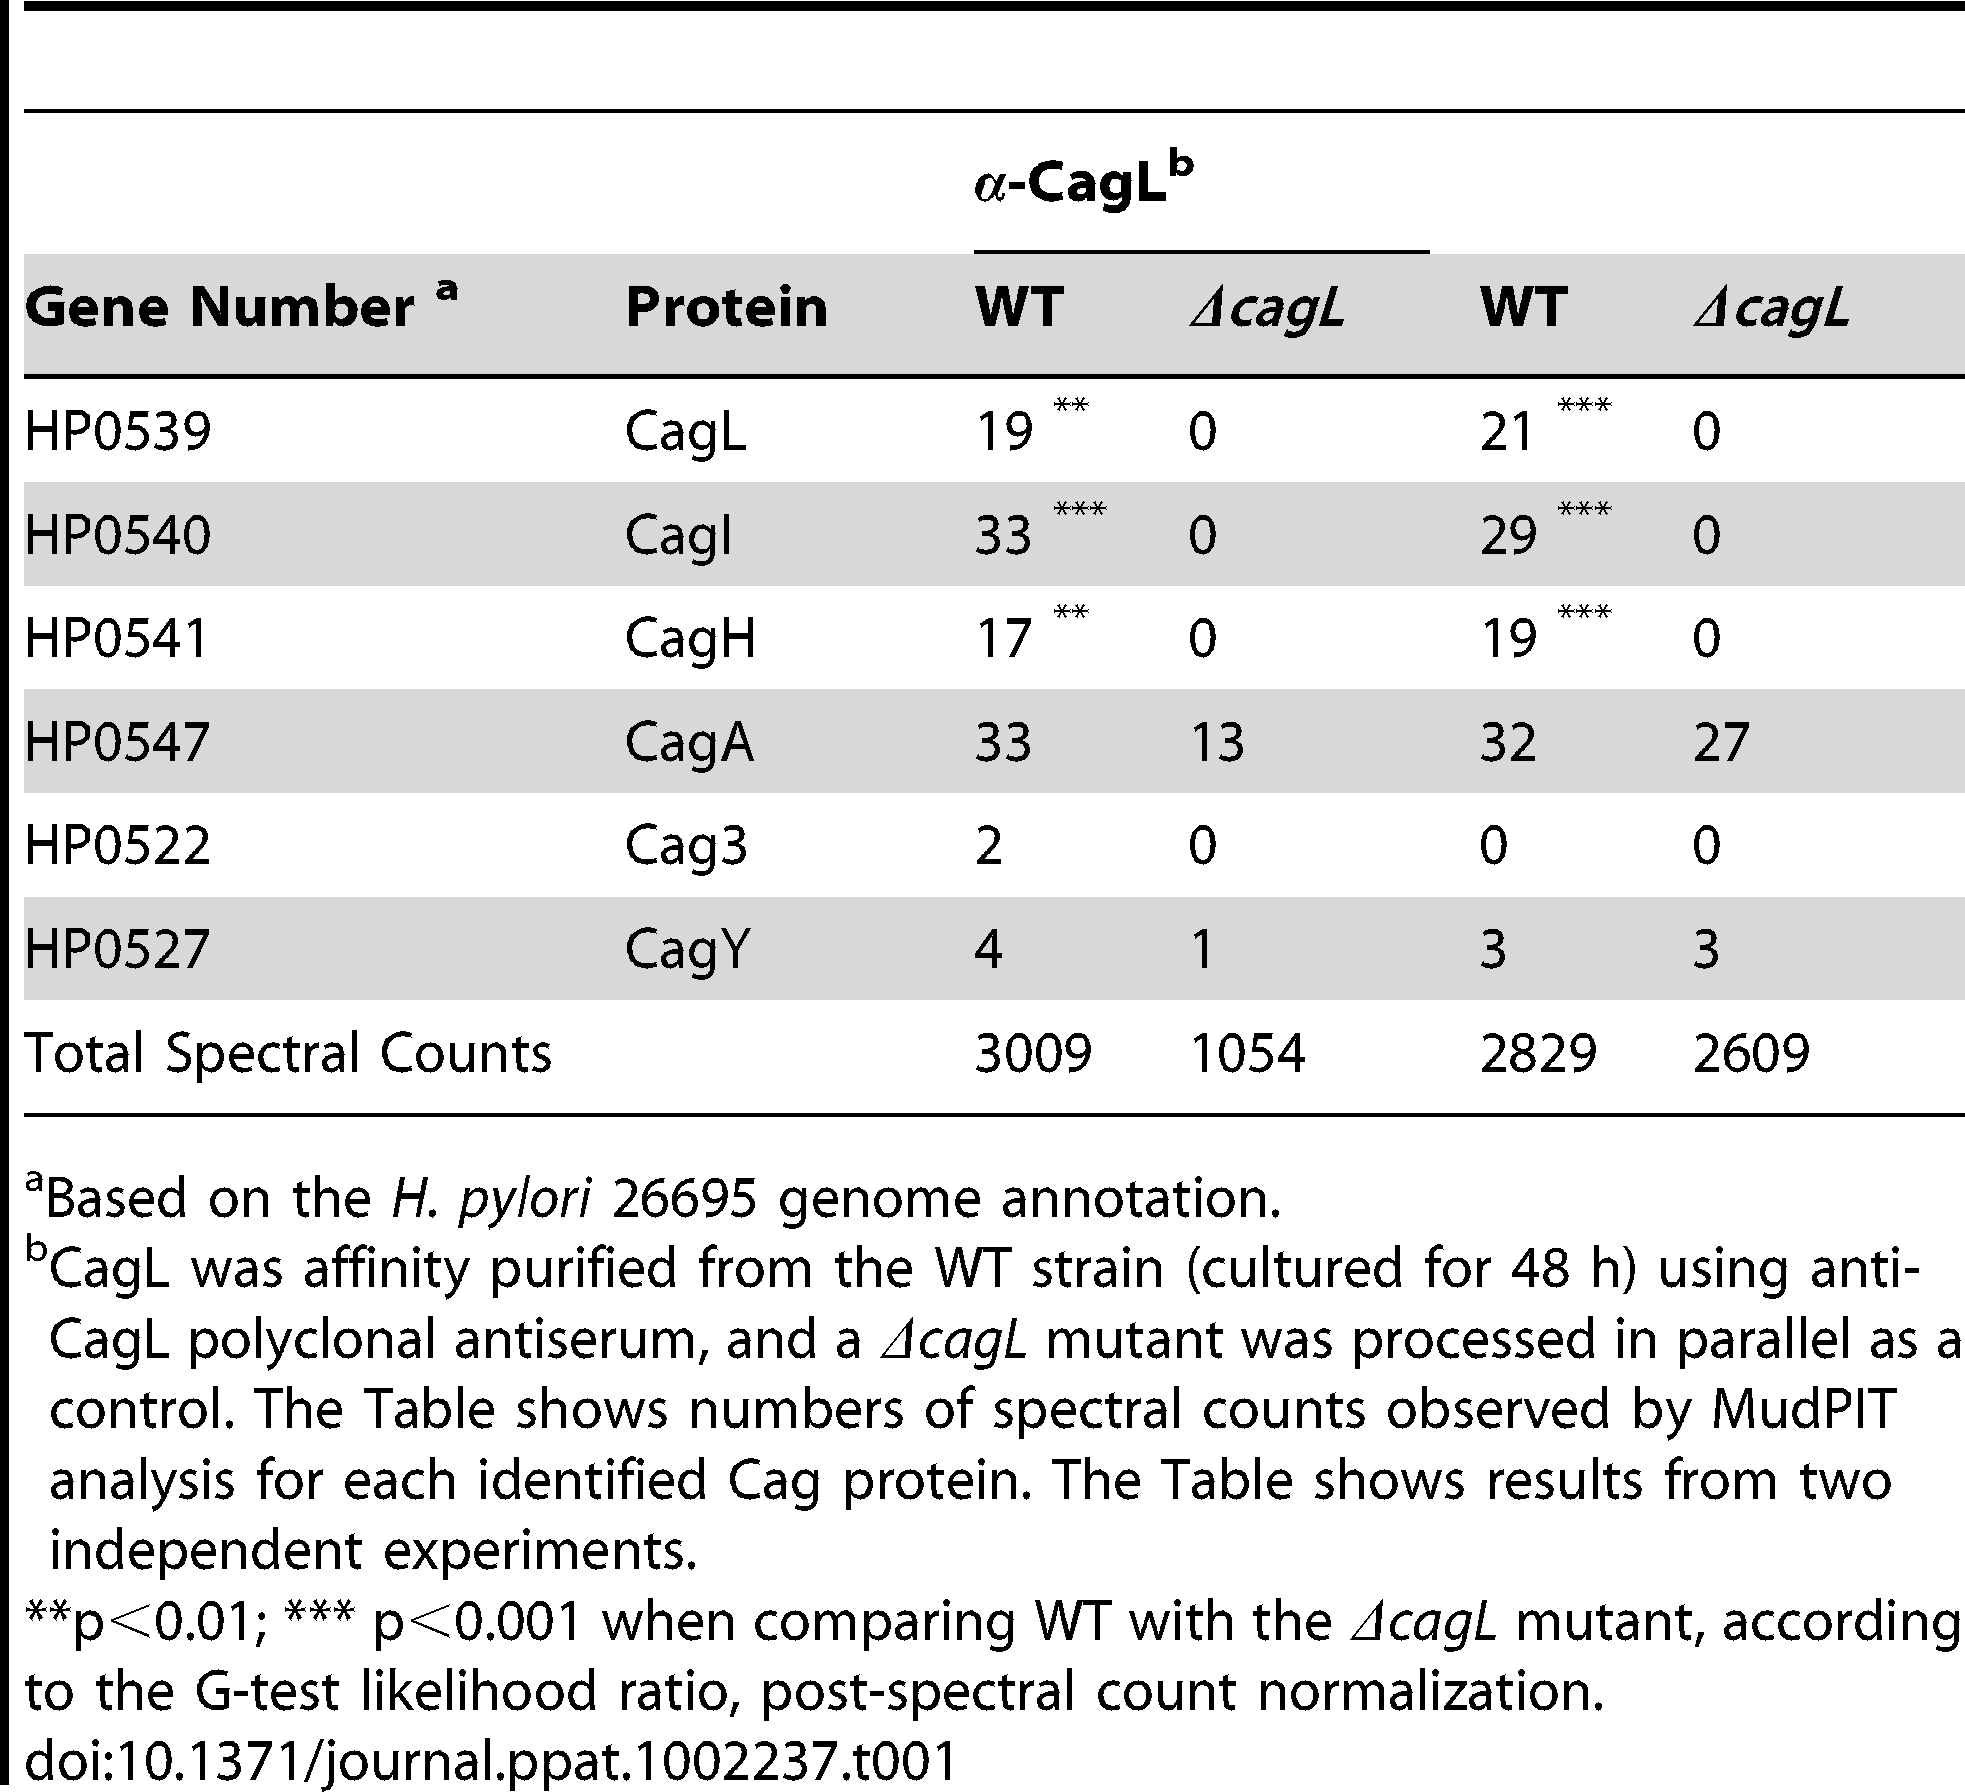 Cag proteins that co-purify with CagL.